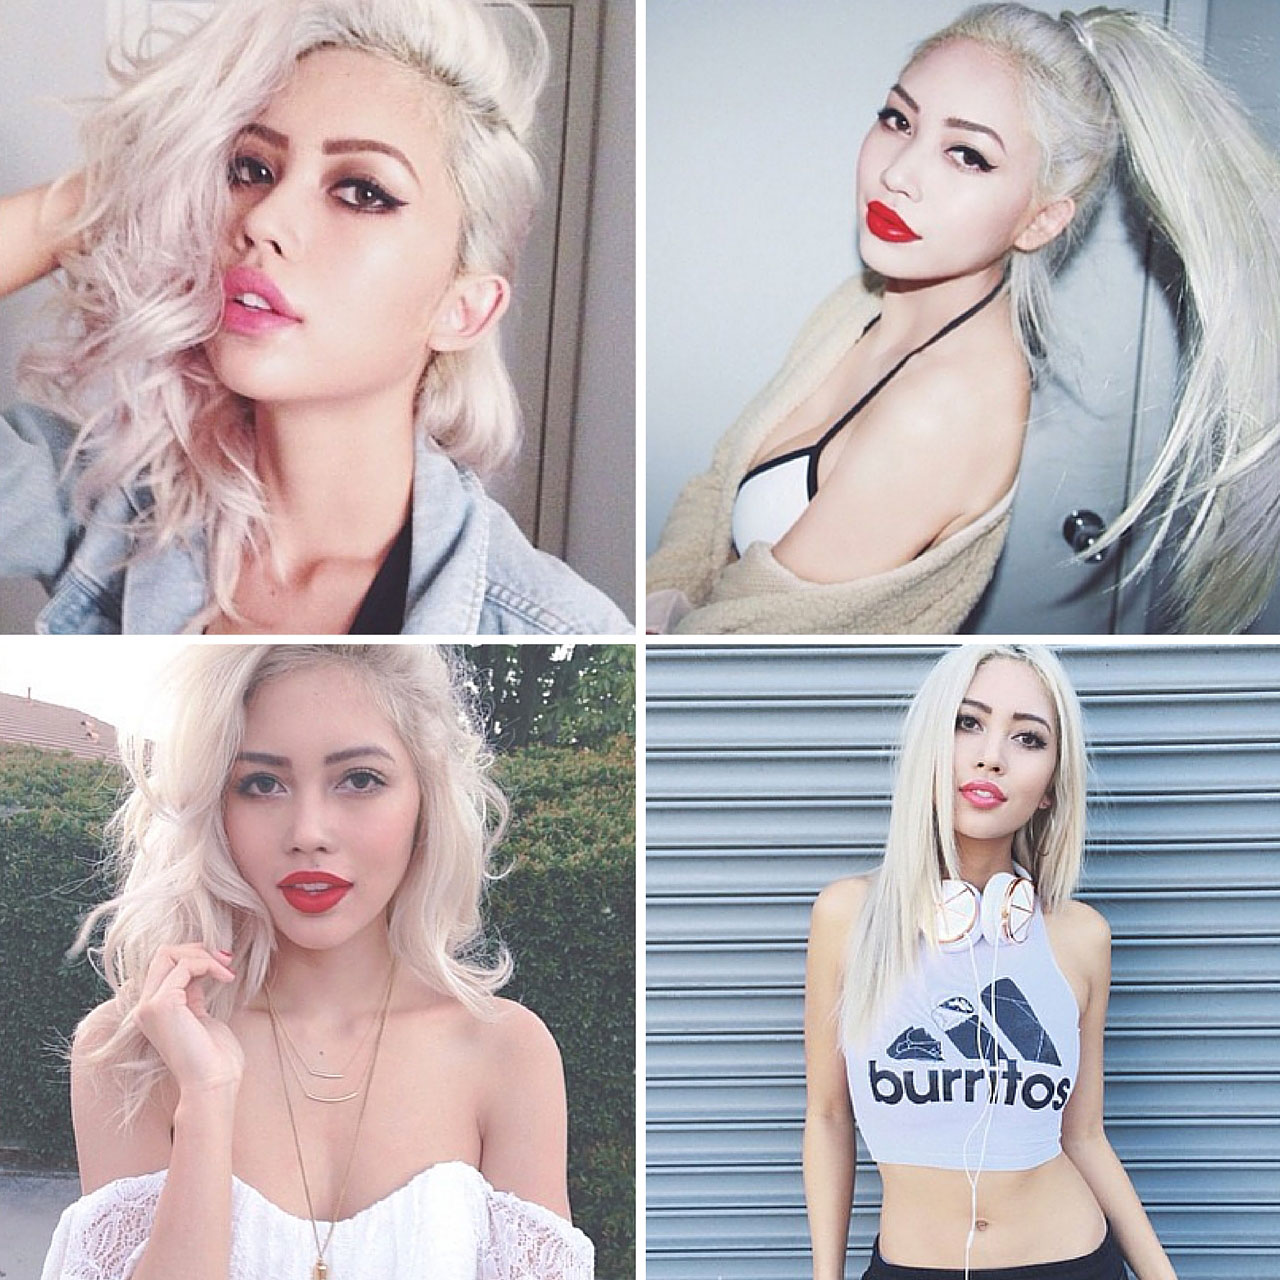 Pure White Blonde - Top 5 Hair Color Trends For 2016